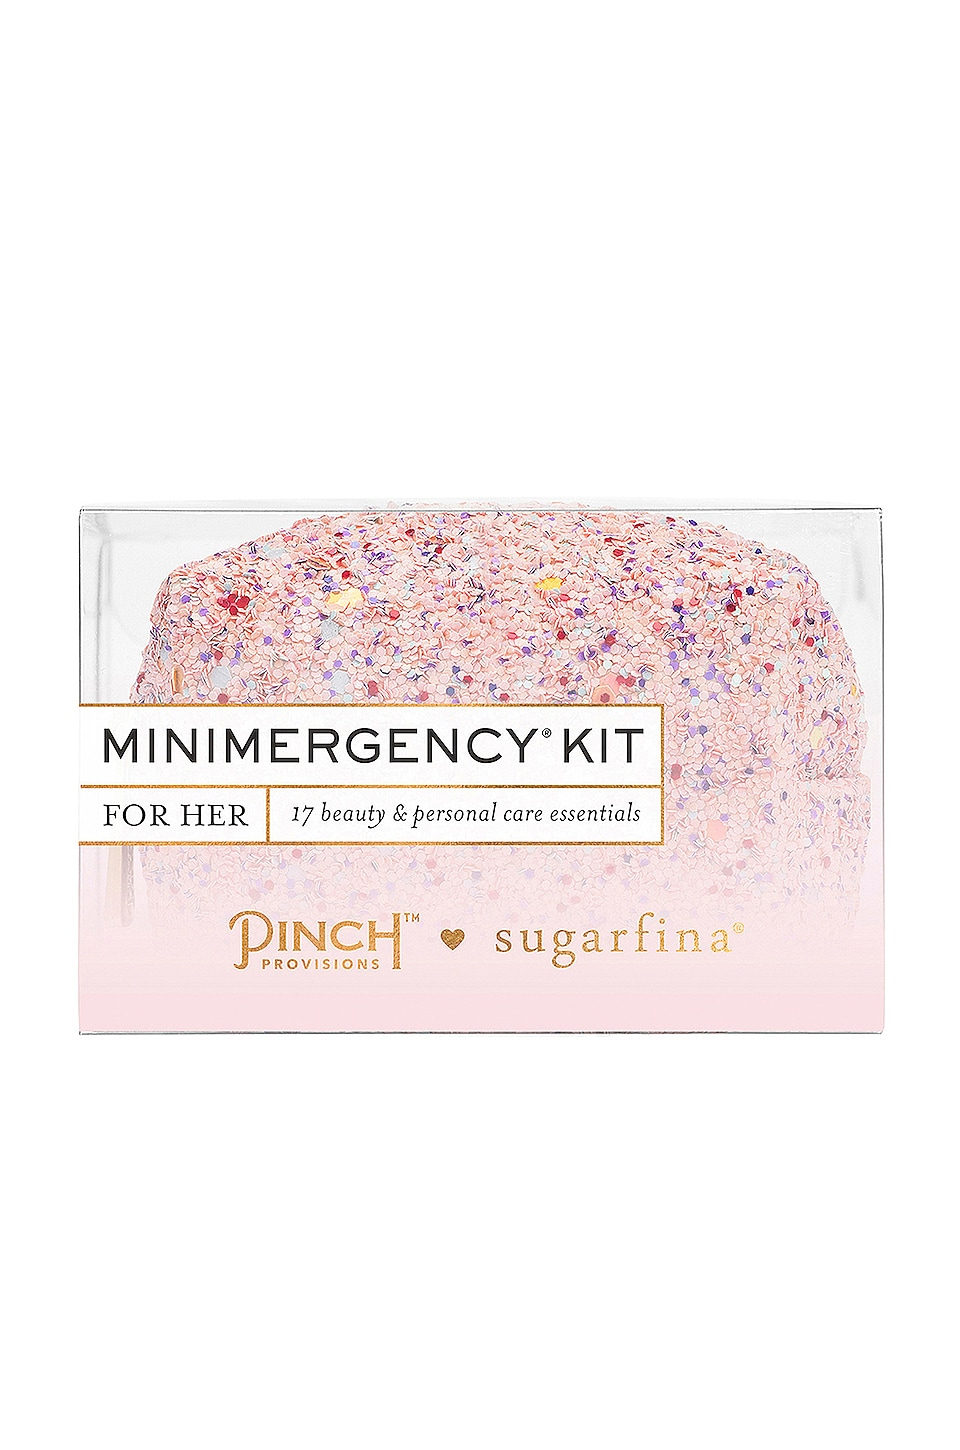 Pinch Provisions x Sugarfina Minimergency Kit in Pink Multi Glitter